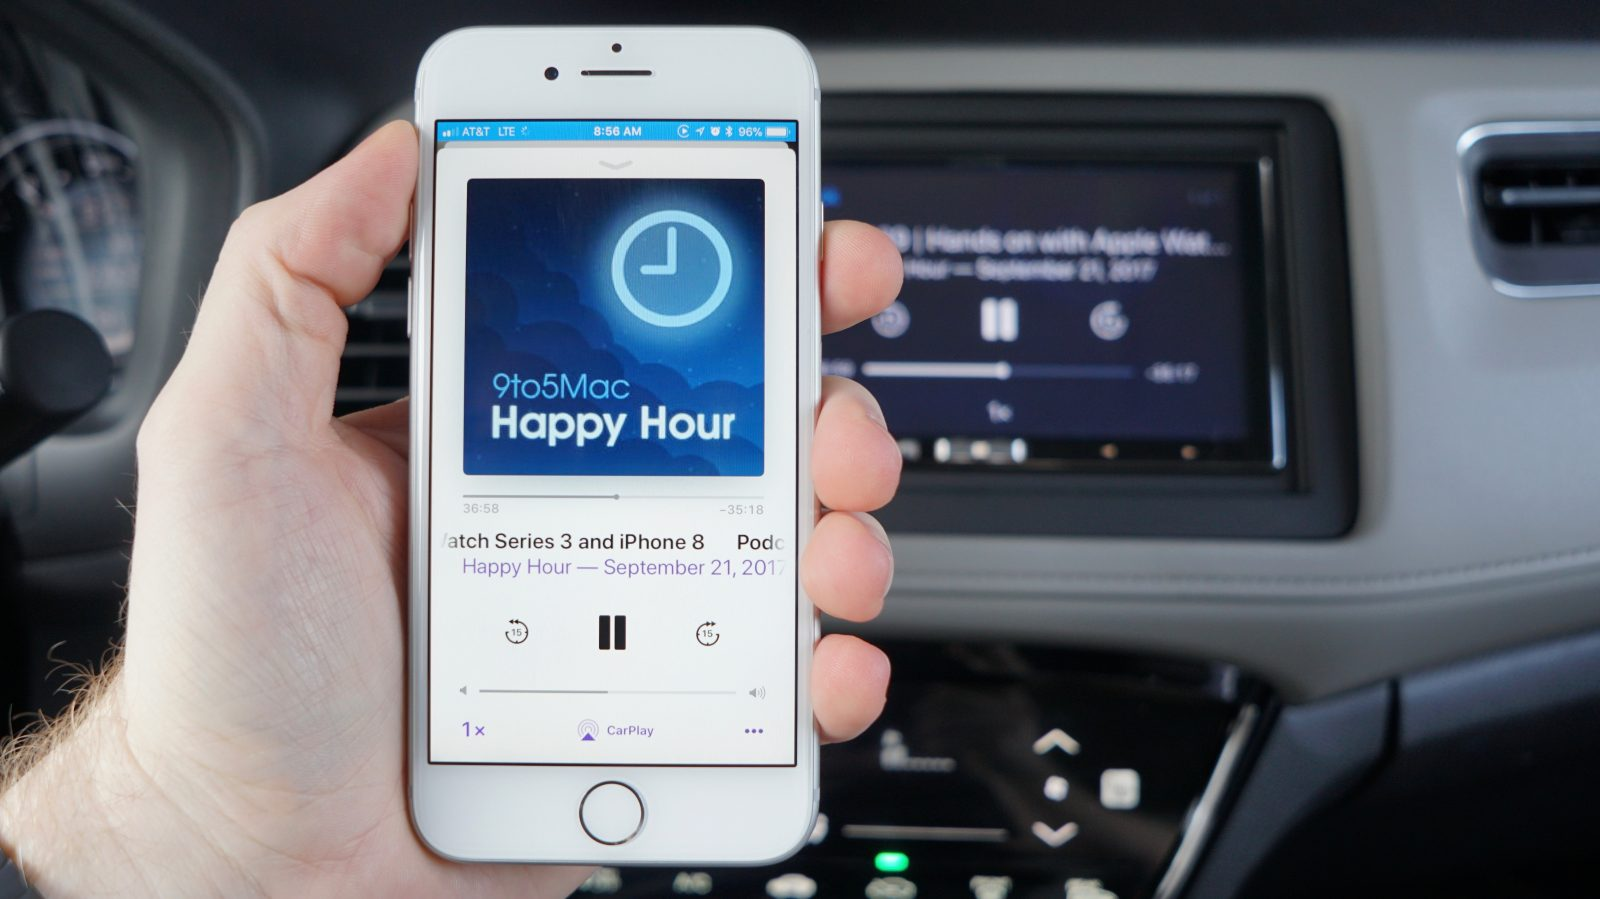 Best CarPlay apps to download on iPhone - 9to5Mac